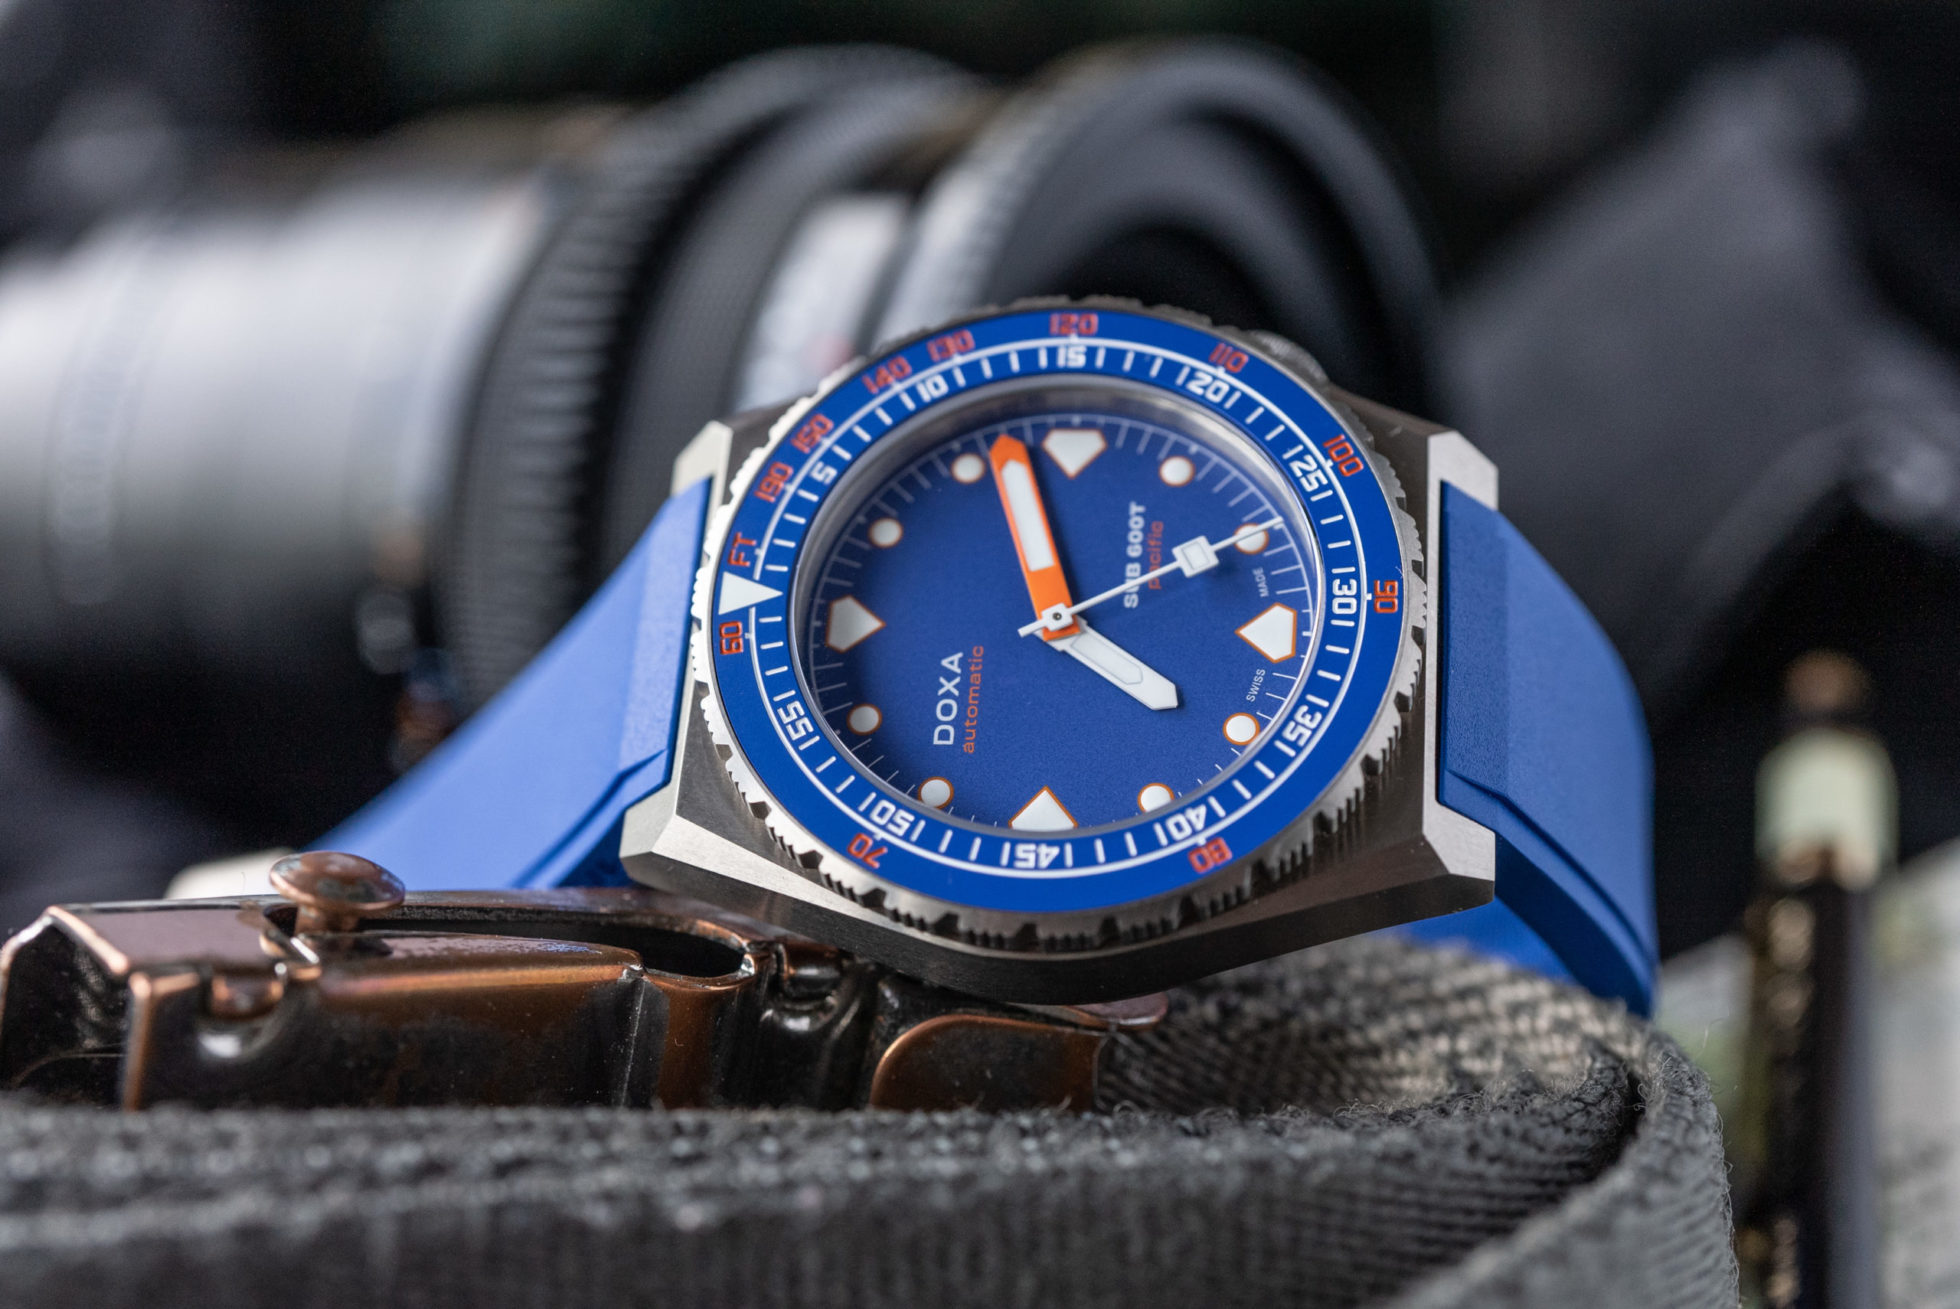 INTRODUCING: The Time+Tide x Doxa SUB 600T 'pacific' Limited Edition of 200 pieces, available to buy here now